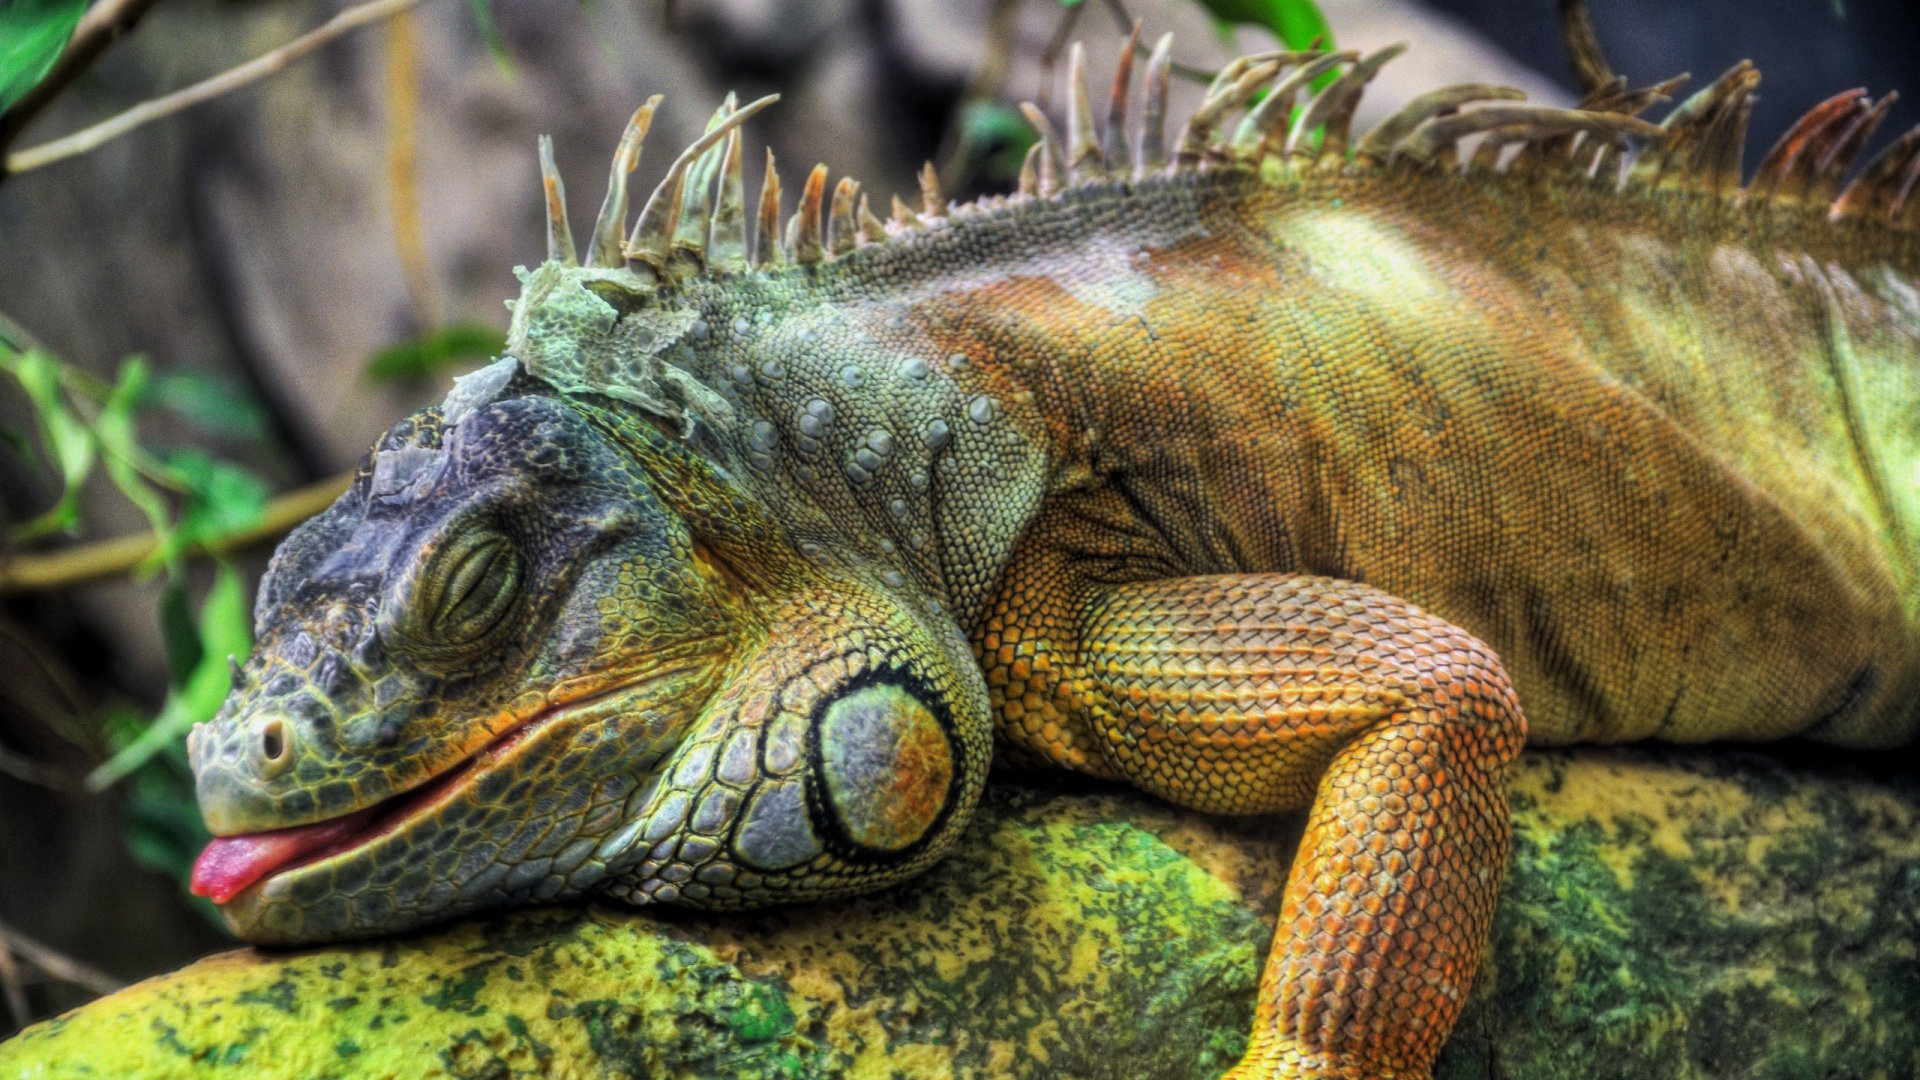 Download 1080p Iguana PC wallpaper ID:380898 for free